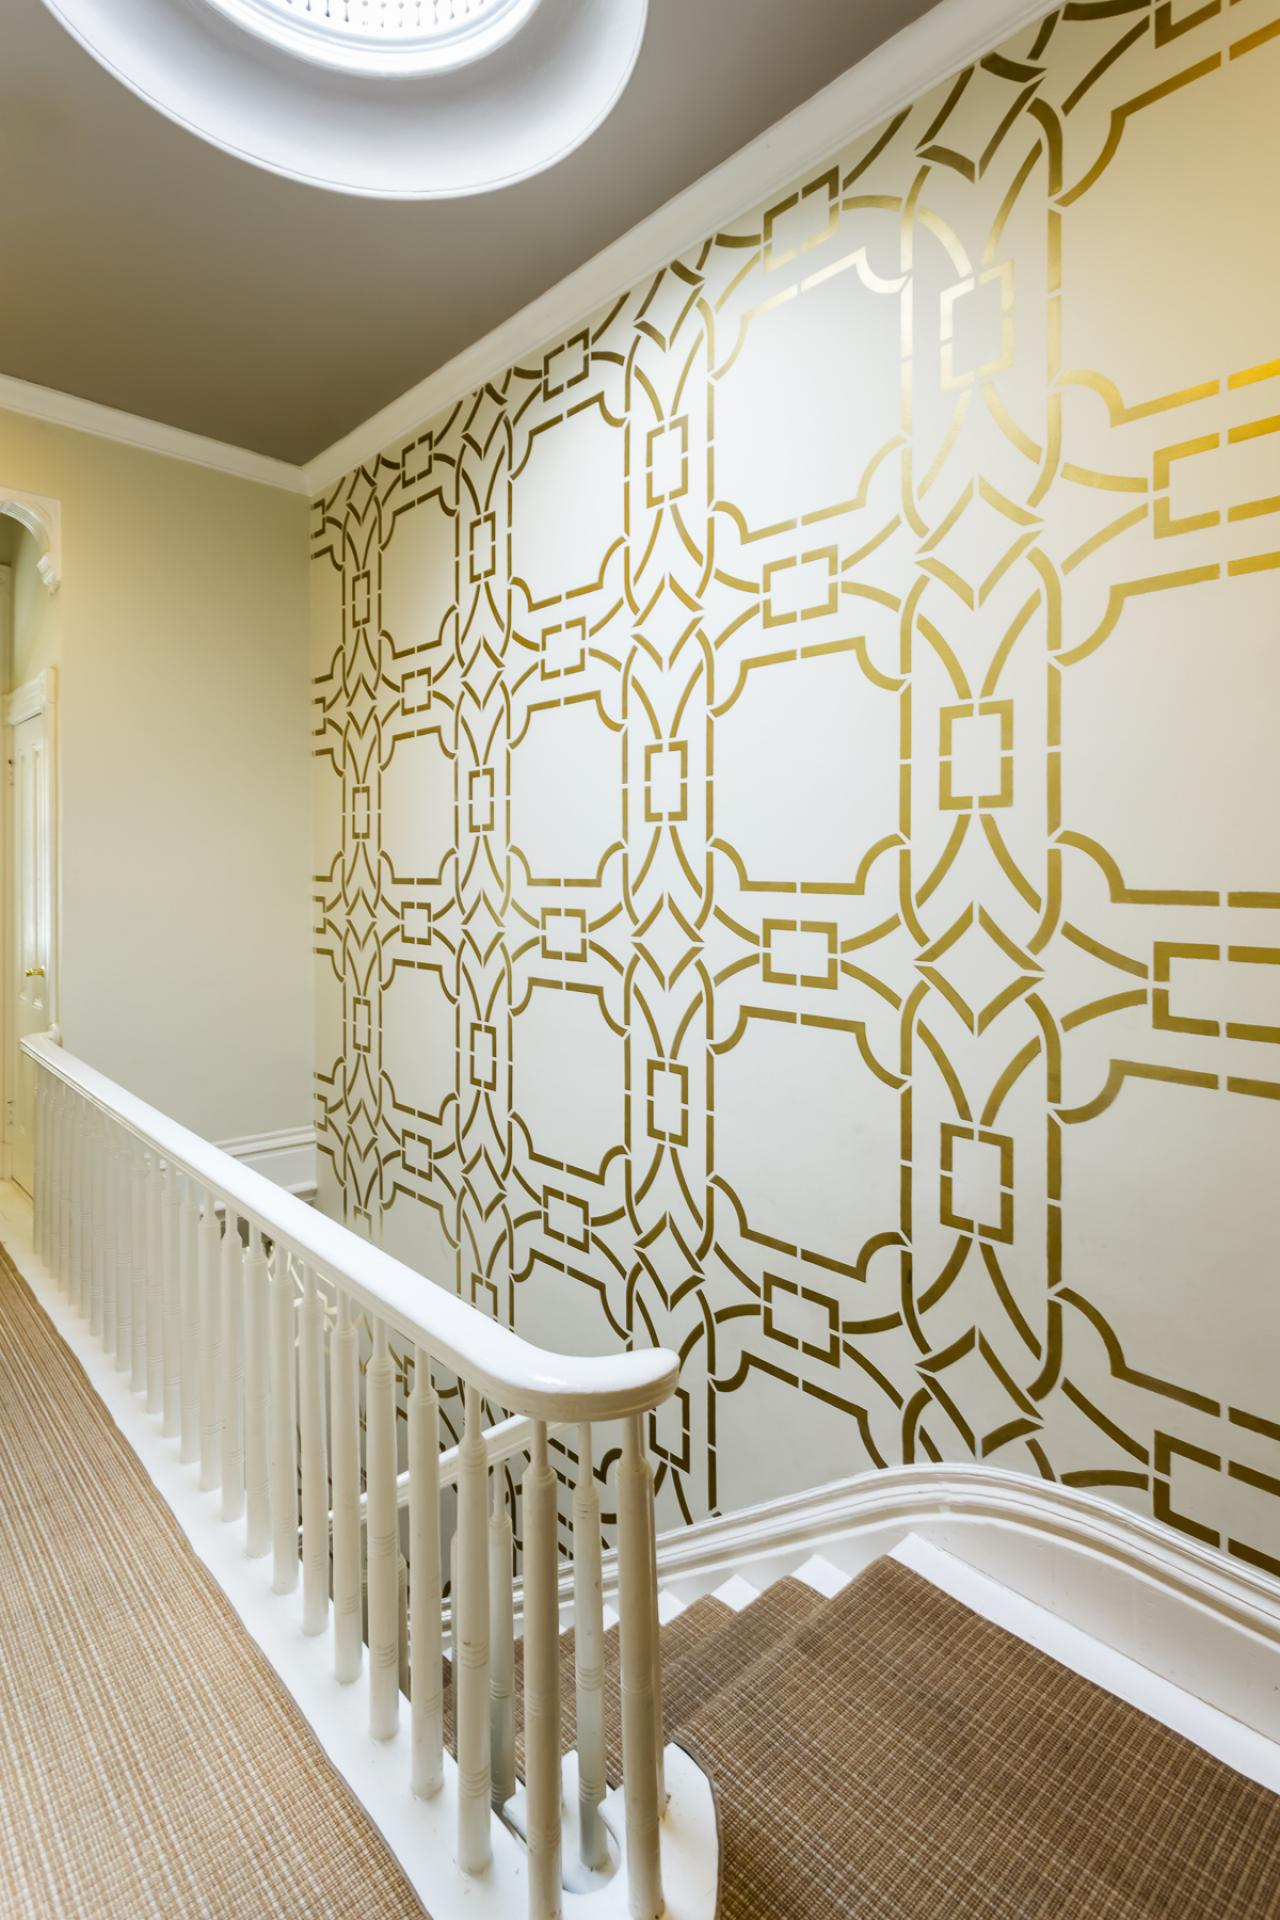 dp_kress-jack-white-eclectic-hallway-stairs-stencil_v-jpg-rend-hgtvcom-1280-1920